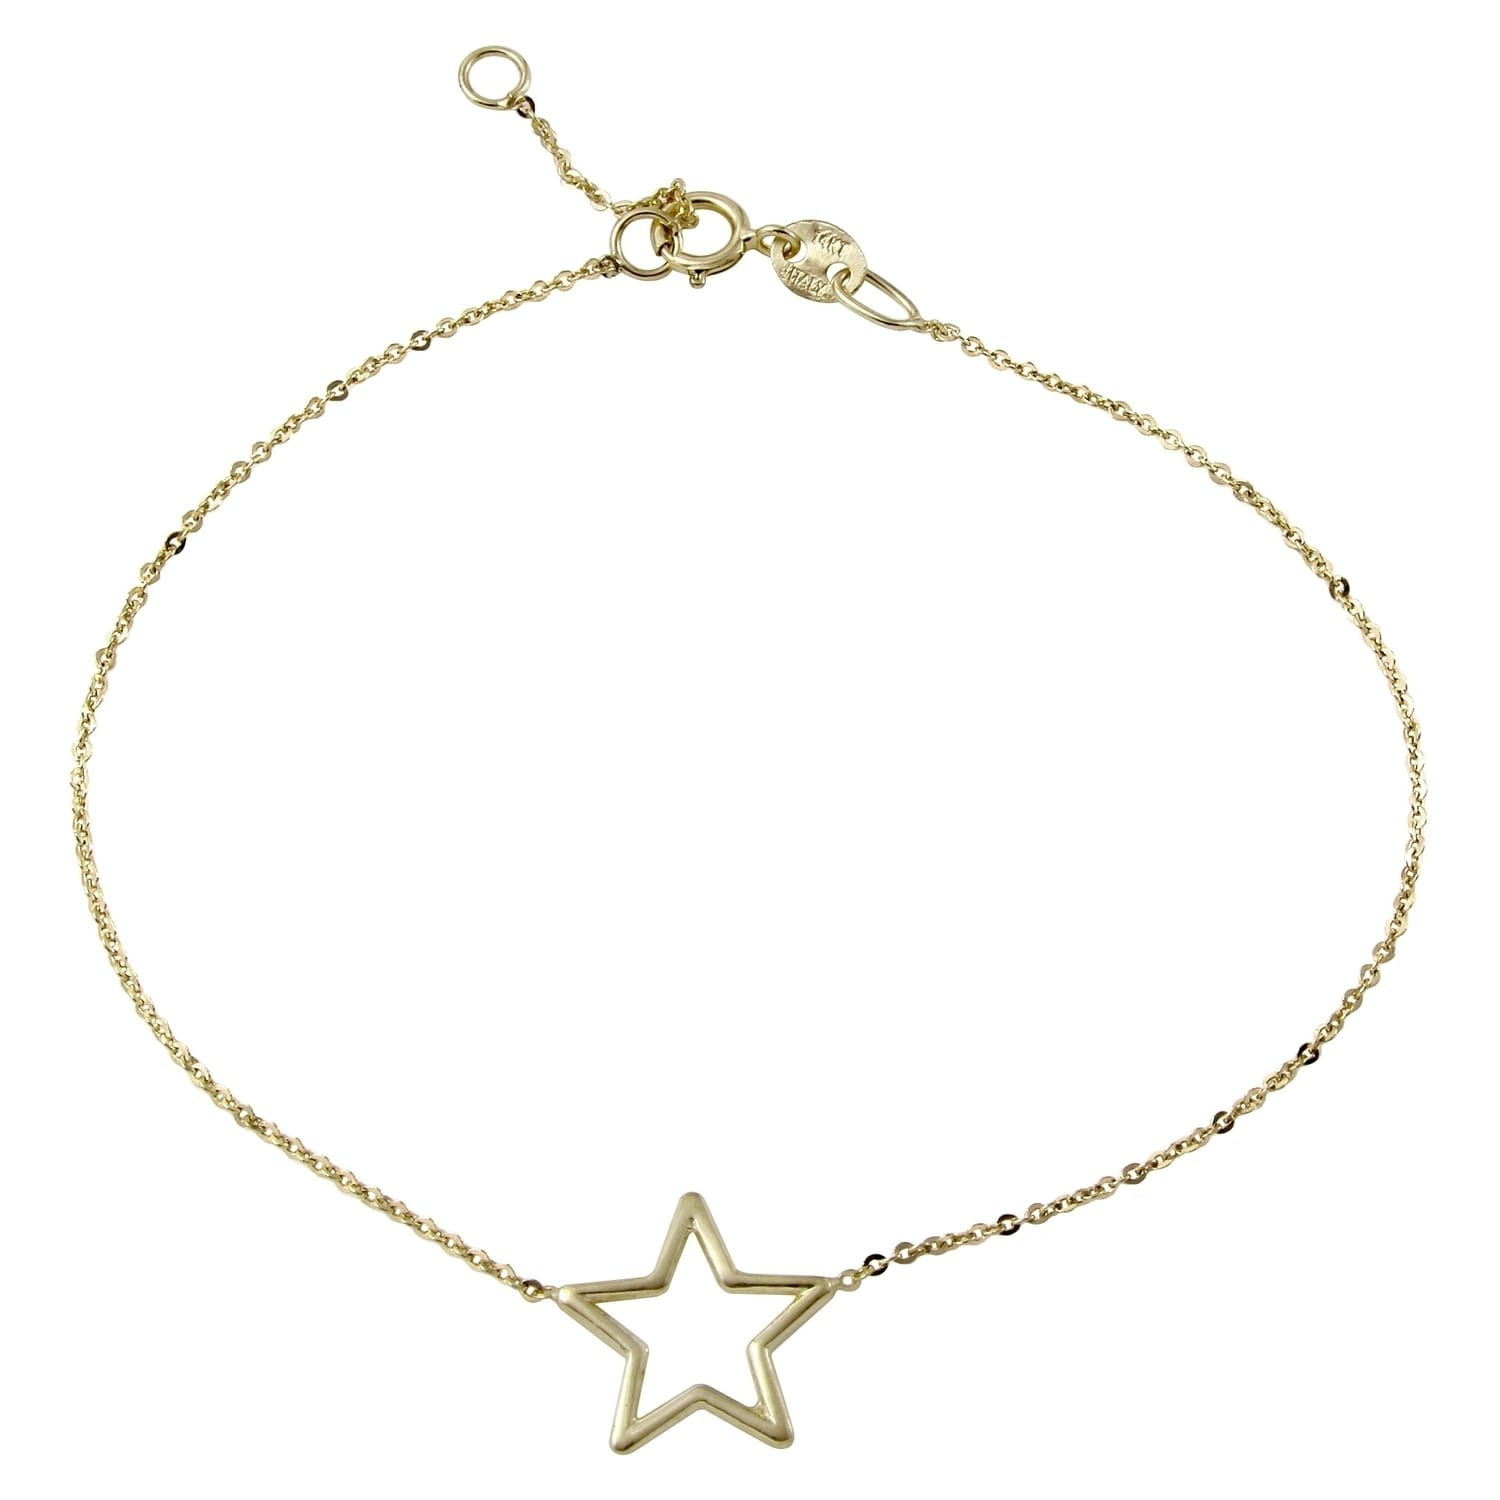 14k Italian Yellow Gold Star Bracelet Adjule 6 75 To 7 25 Free Shipping Today 20817426